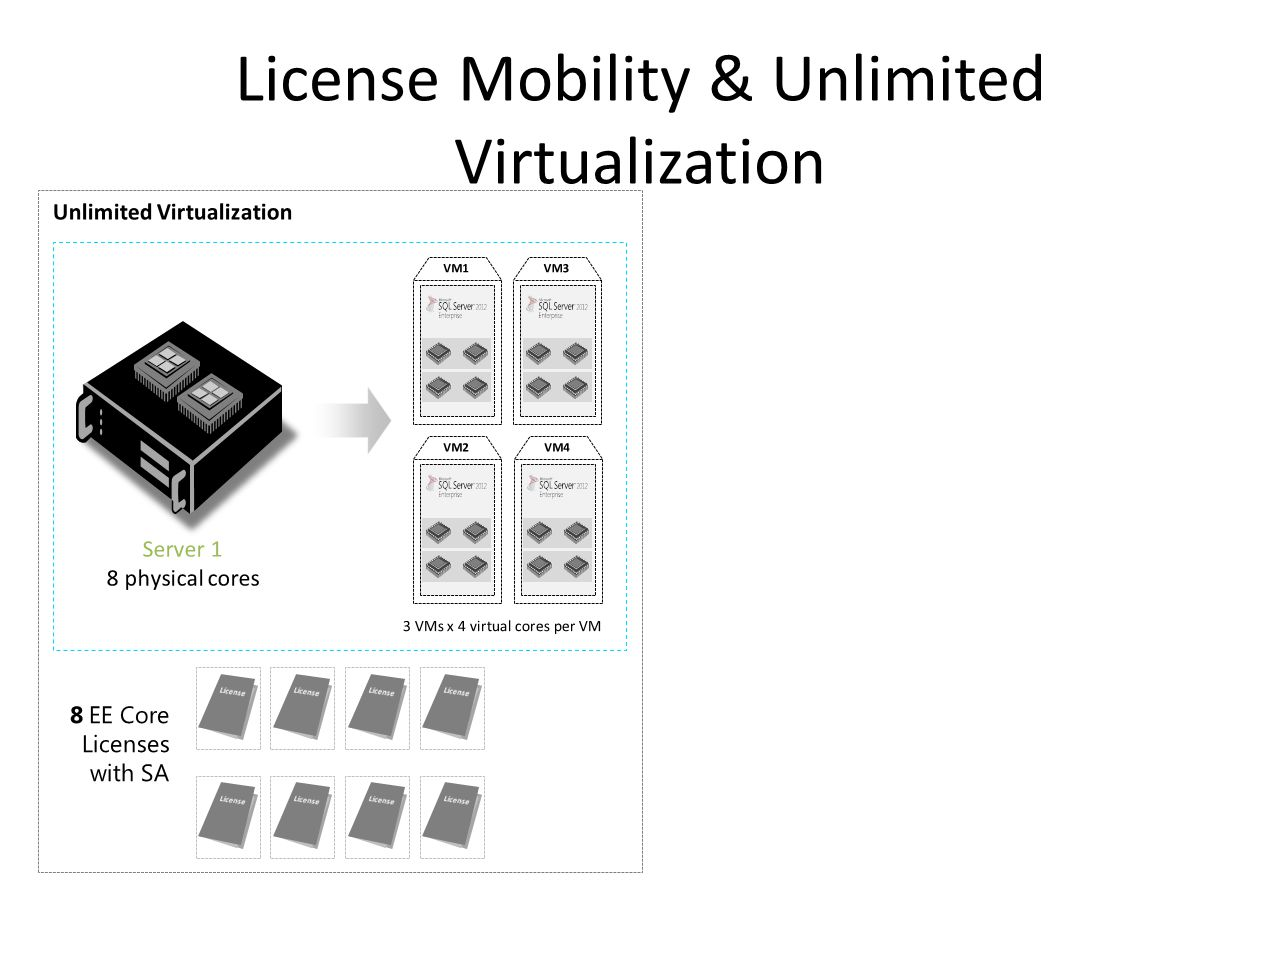 License Mobility & Unlimited Virtualization